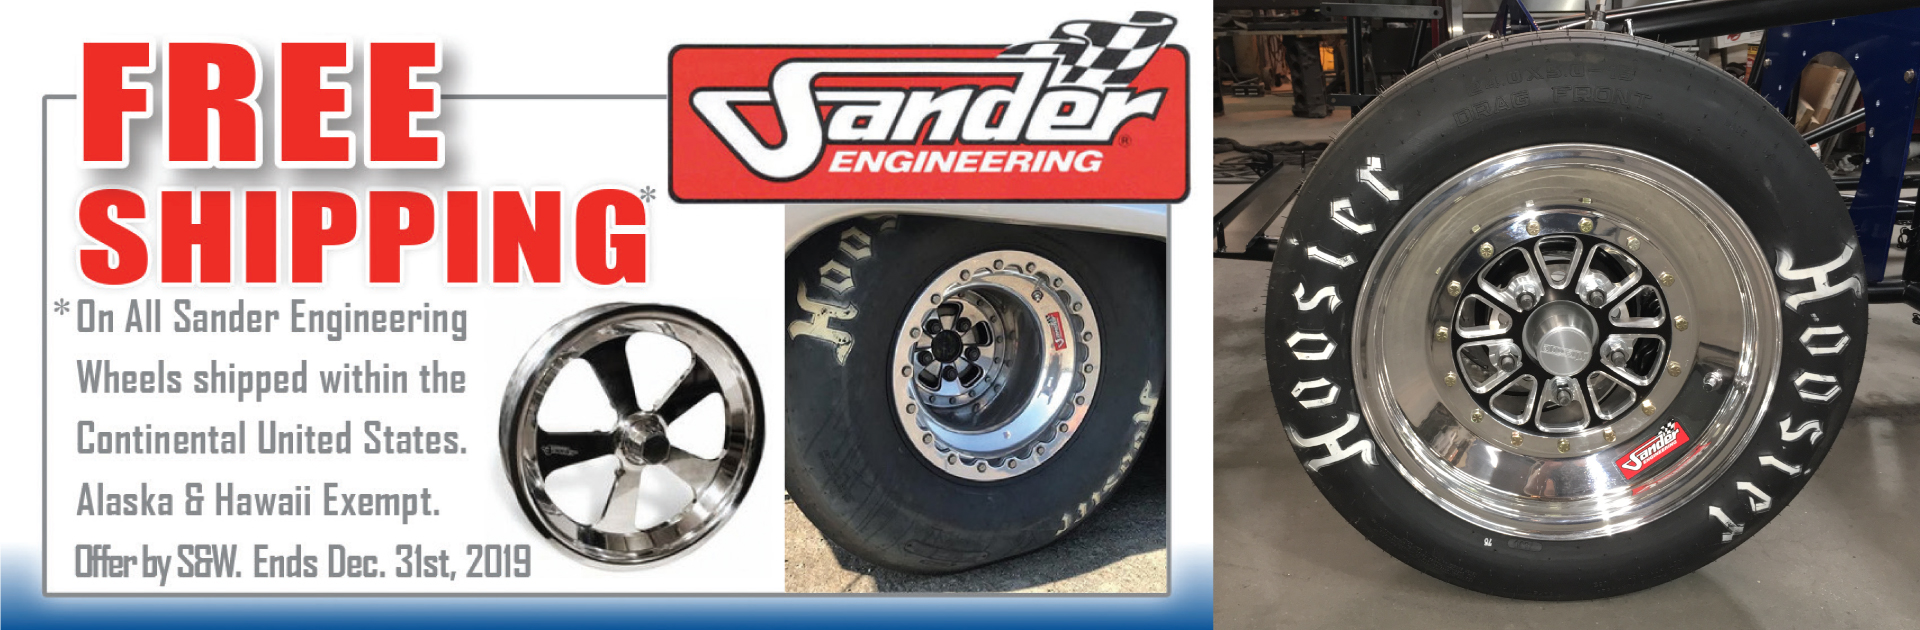 Free Shipping Wheels Offer